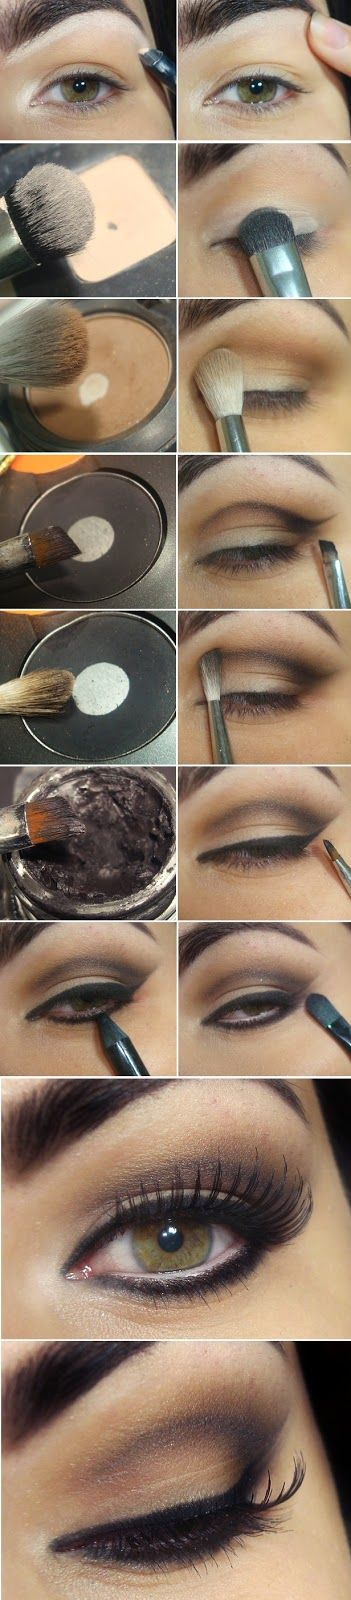 Inspiration and Marked Concave Lid Nude Makeup Tutorials Step by Step / Best LoLus Makeup Fashion